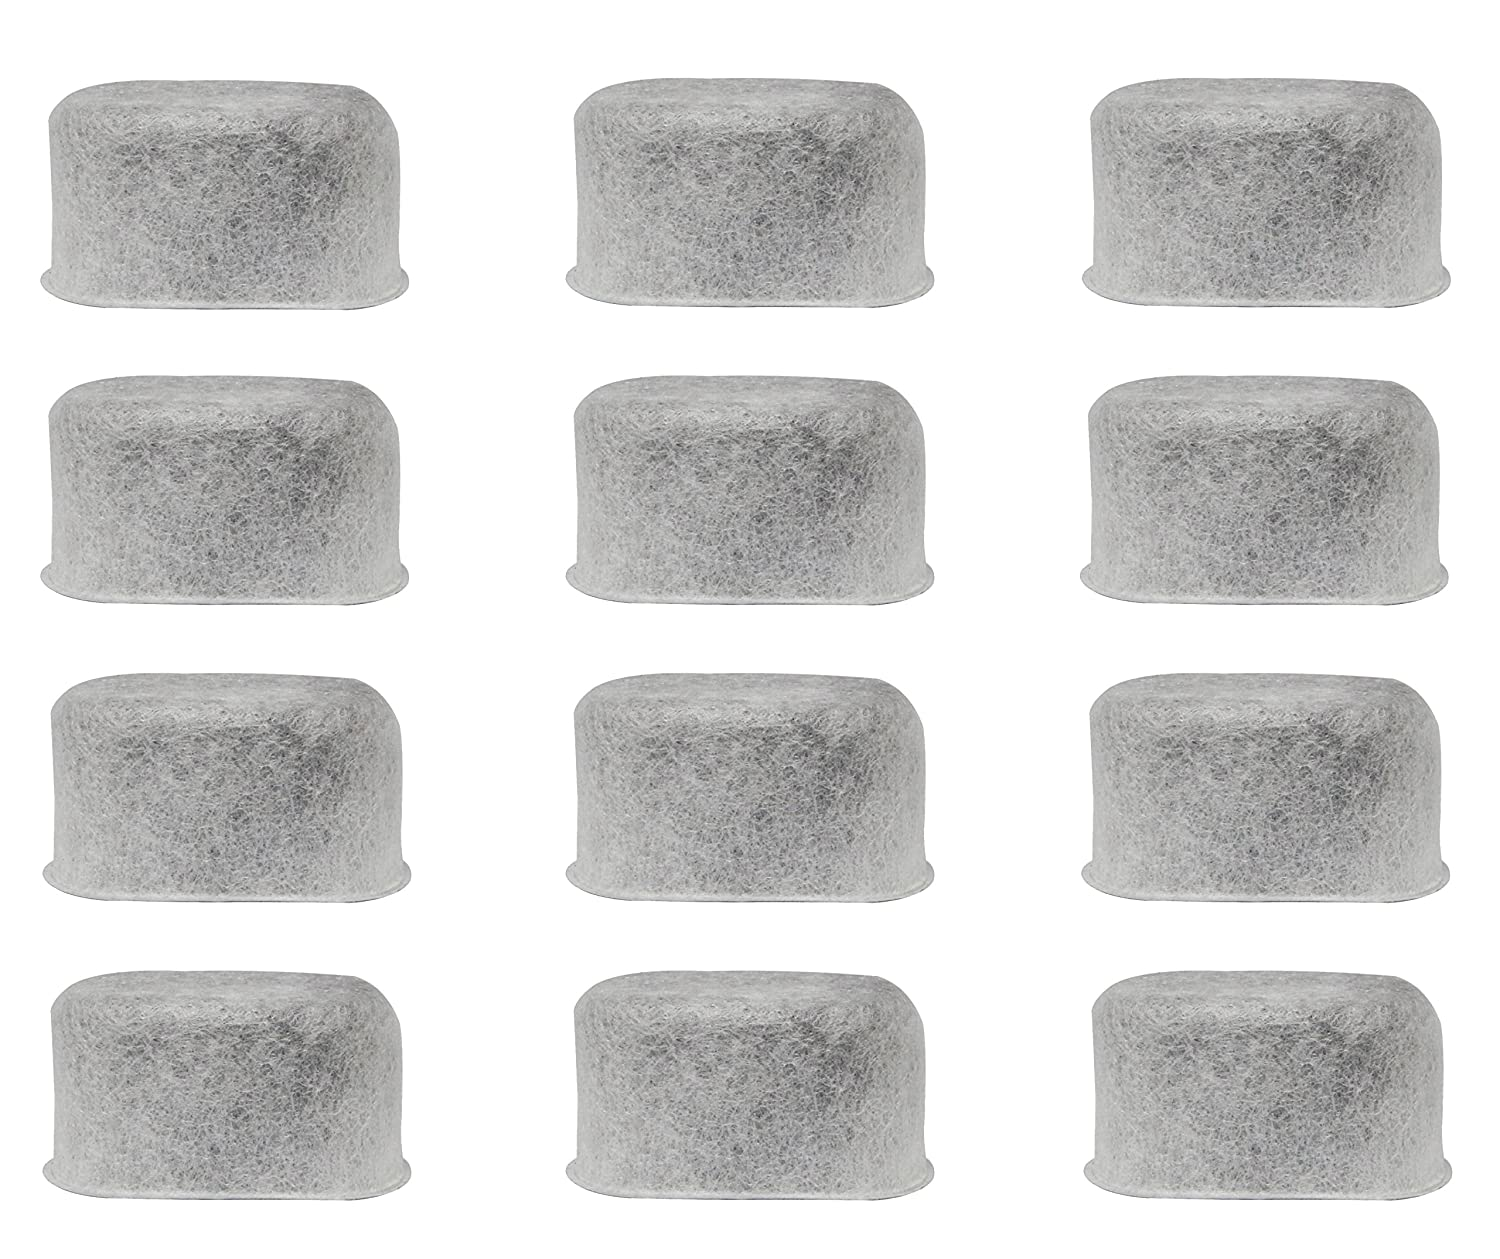 BVANQ Charcoal Coffee Filter Replacement for KitchenAid Coffee Maker KCM111 & KCM112, Replace KitchenAid KCM11WF (Set of 12)